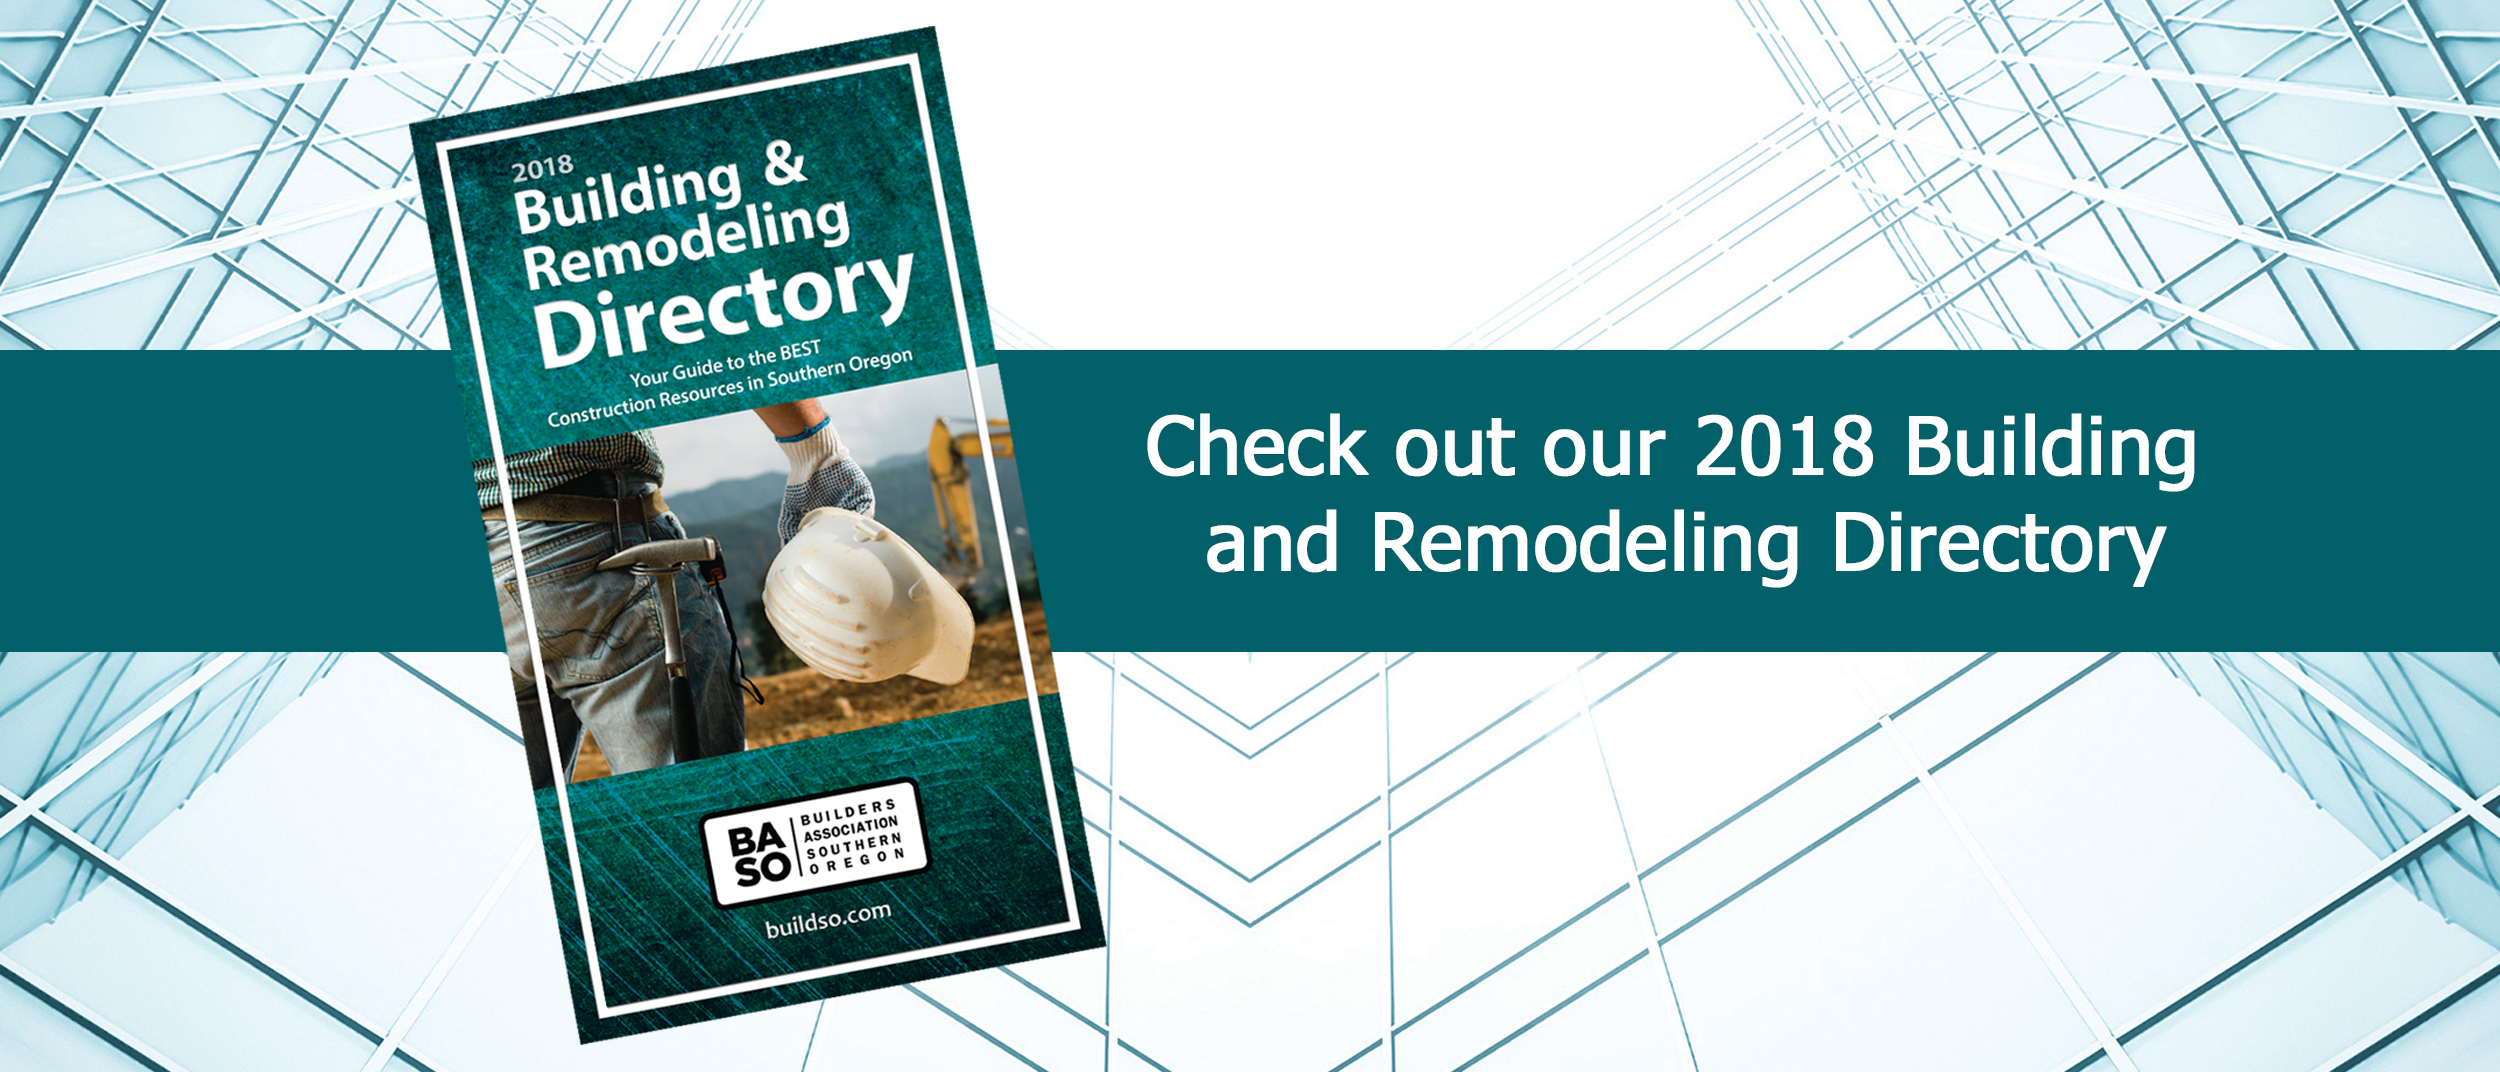 2018 Building & Remodeling Directory